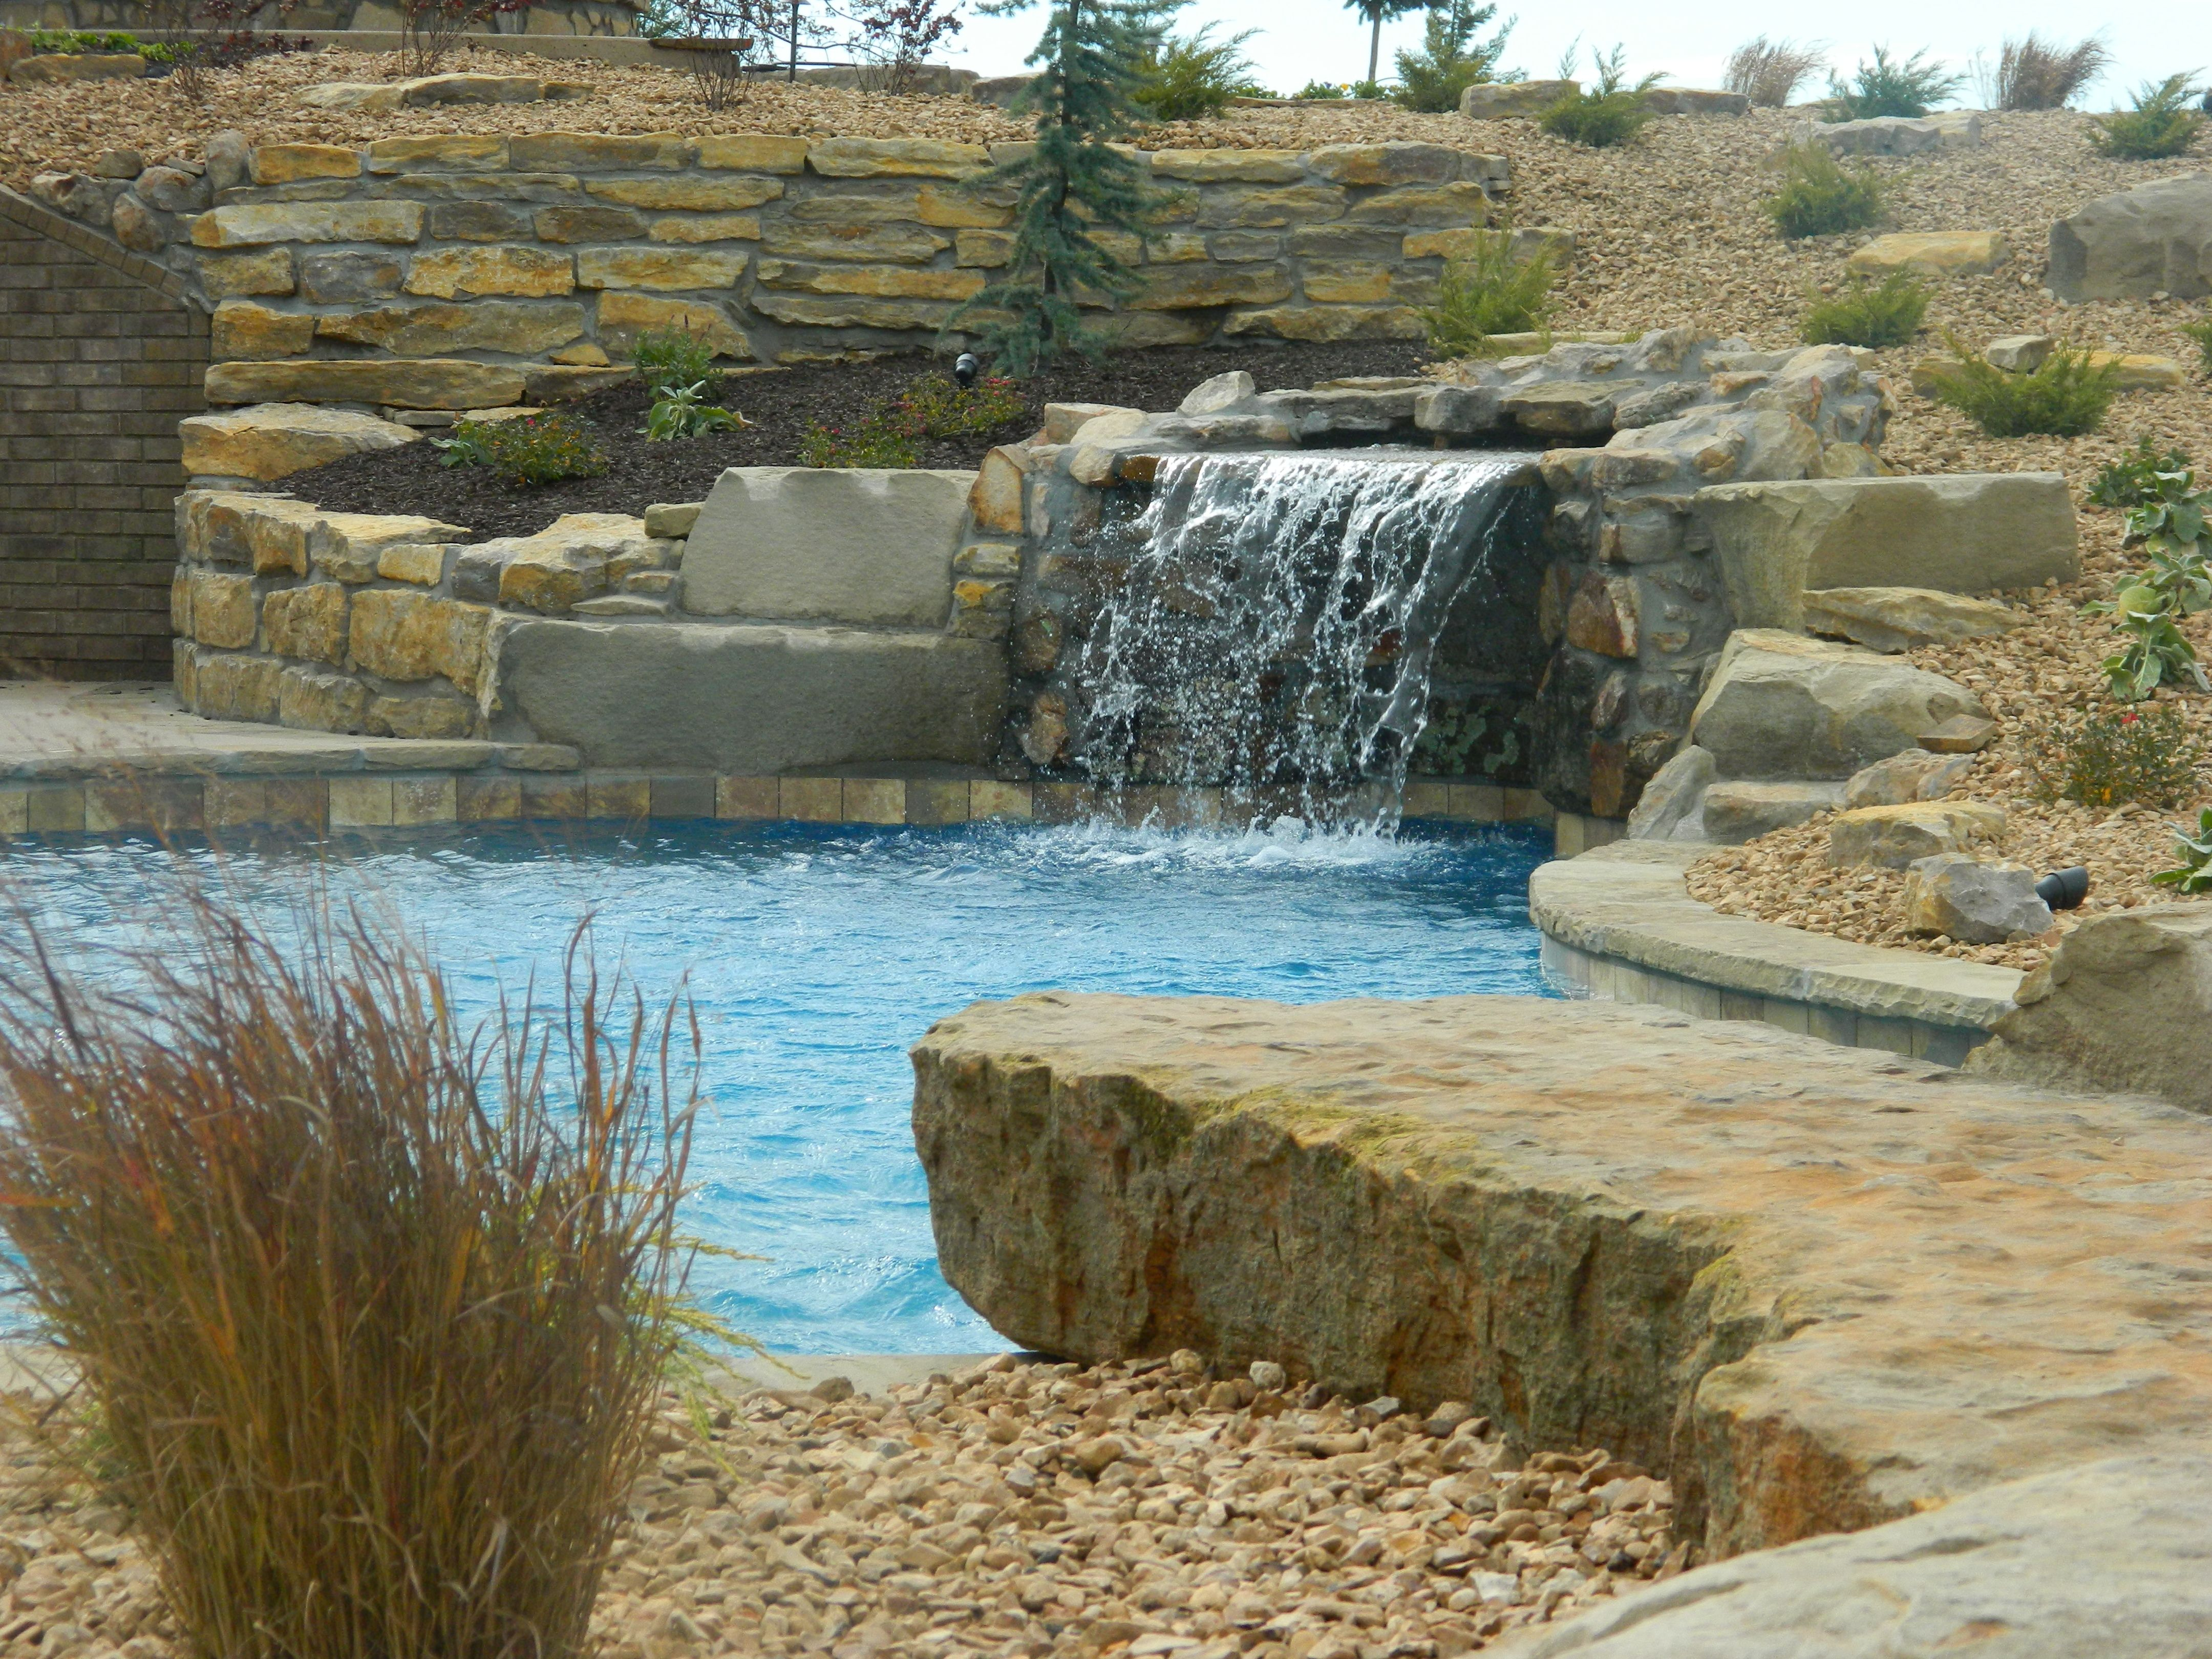 Blue Haven Pools Kc Grotto Waterfall Built Into Hillside